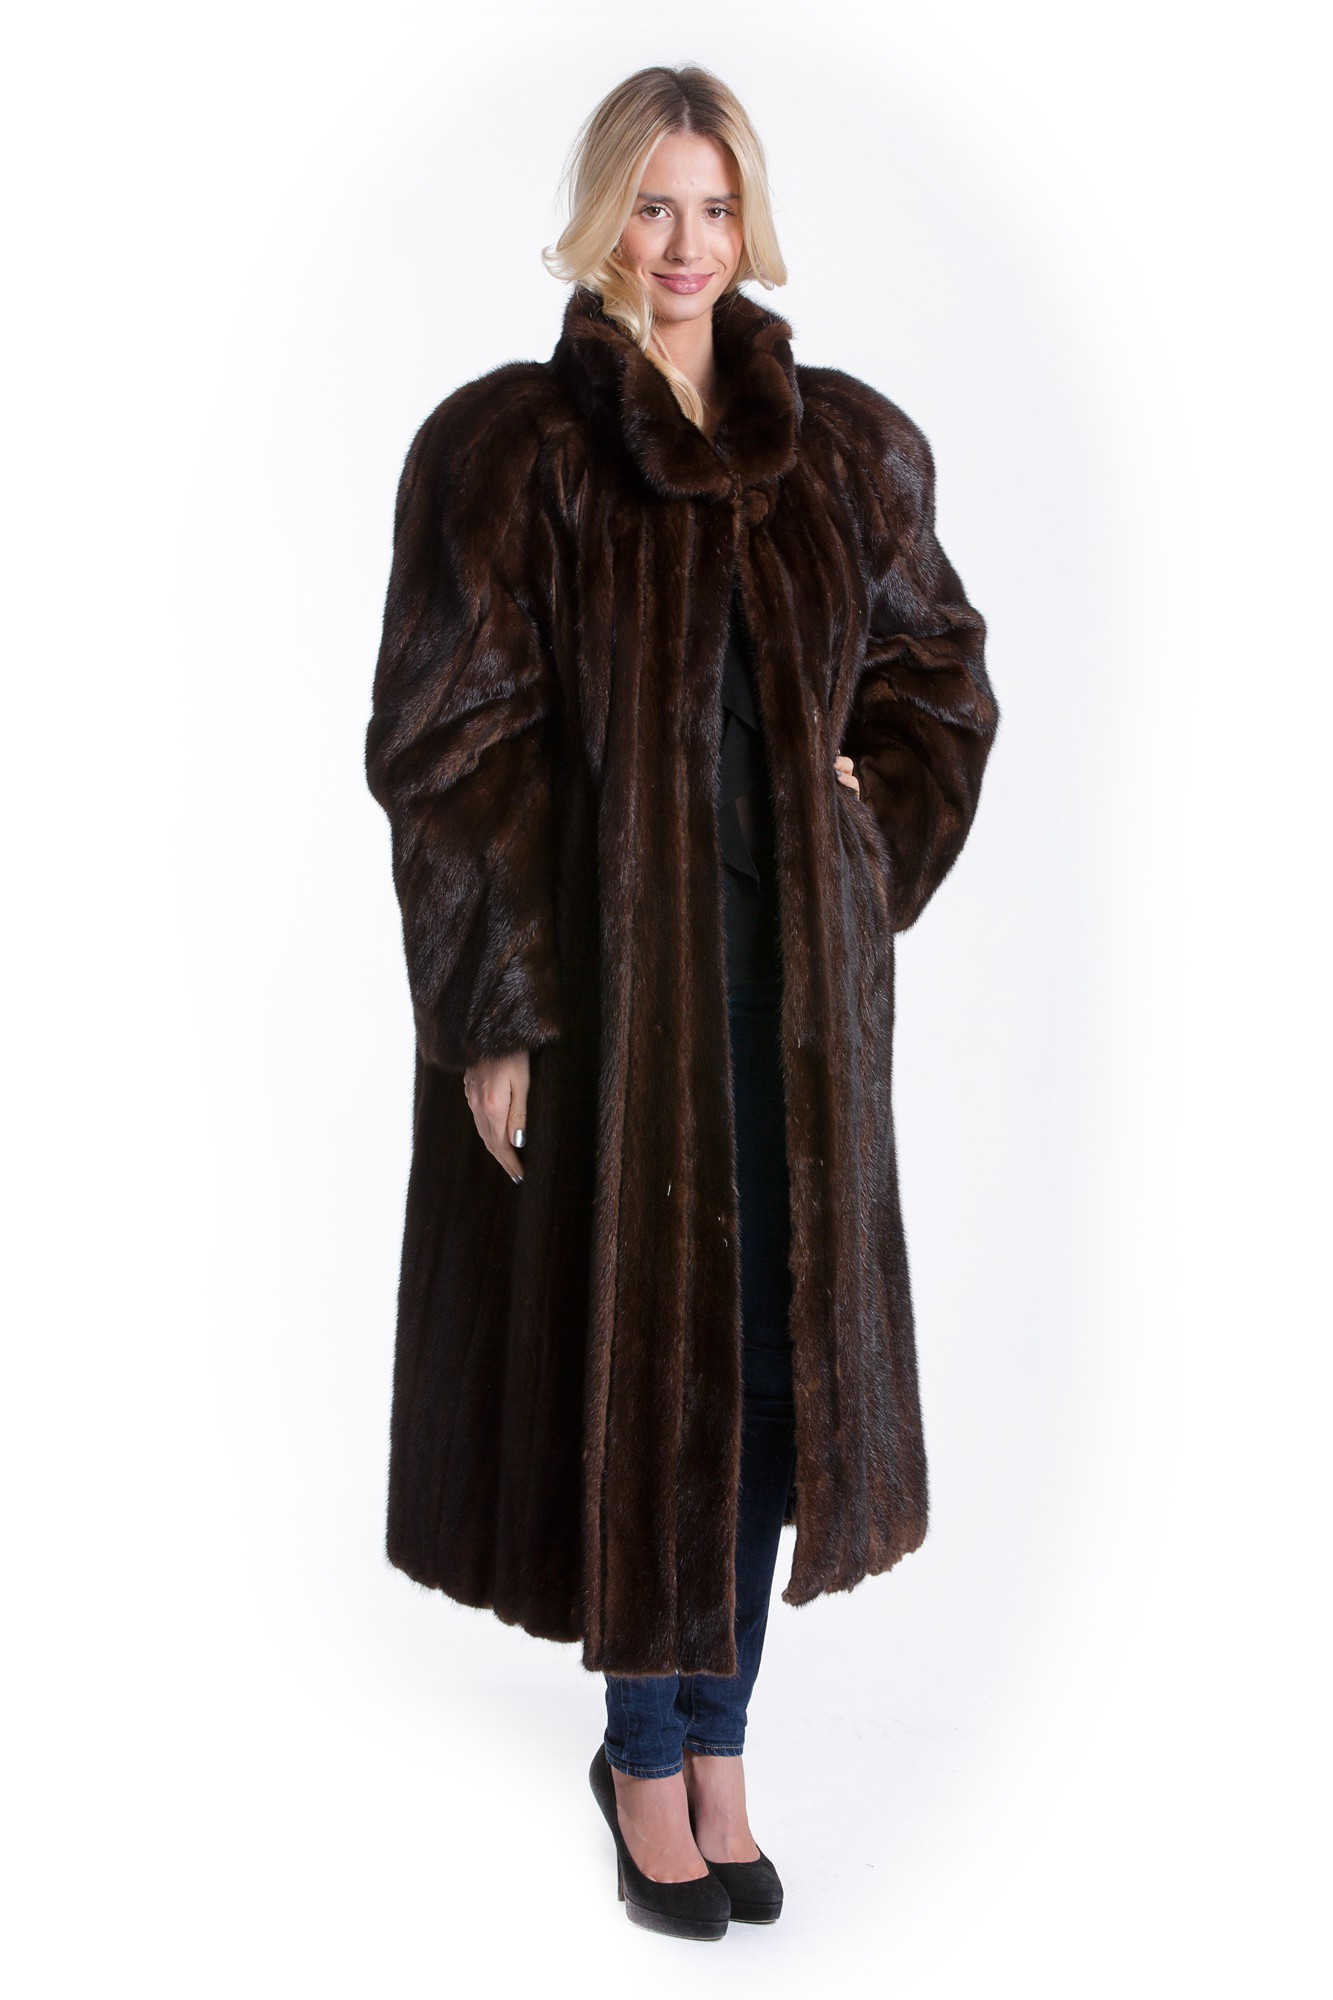 Leather coats for women are perfect for the fall weather. Kluger Furs has wonderful leather jackets in bold colors and patterns. Select a leather coat trimmed in lush fox, or complete your ensemble with a leather and mesh combination.